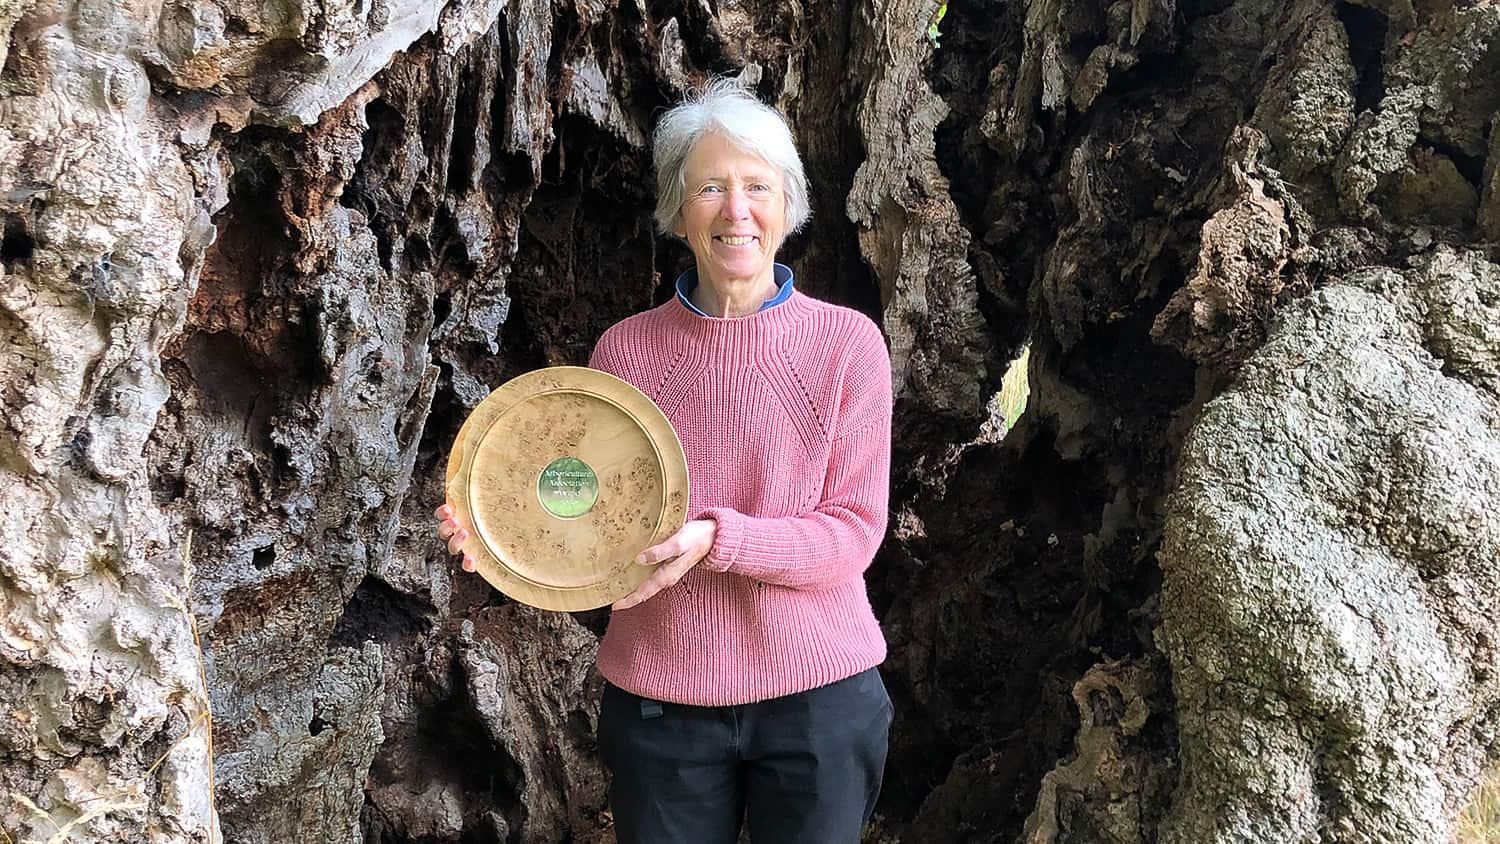 Jill holding her Arboricultural Association Trophy